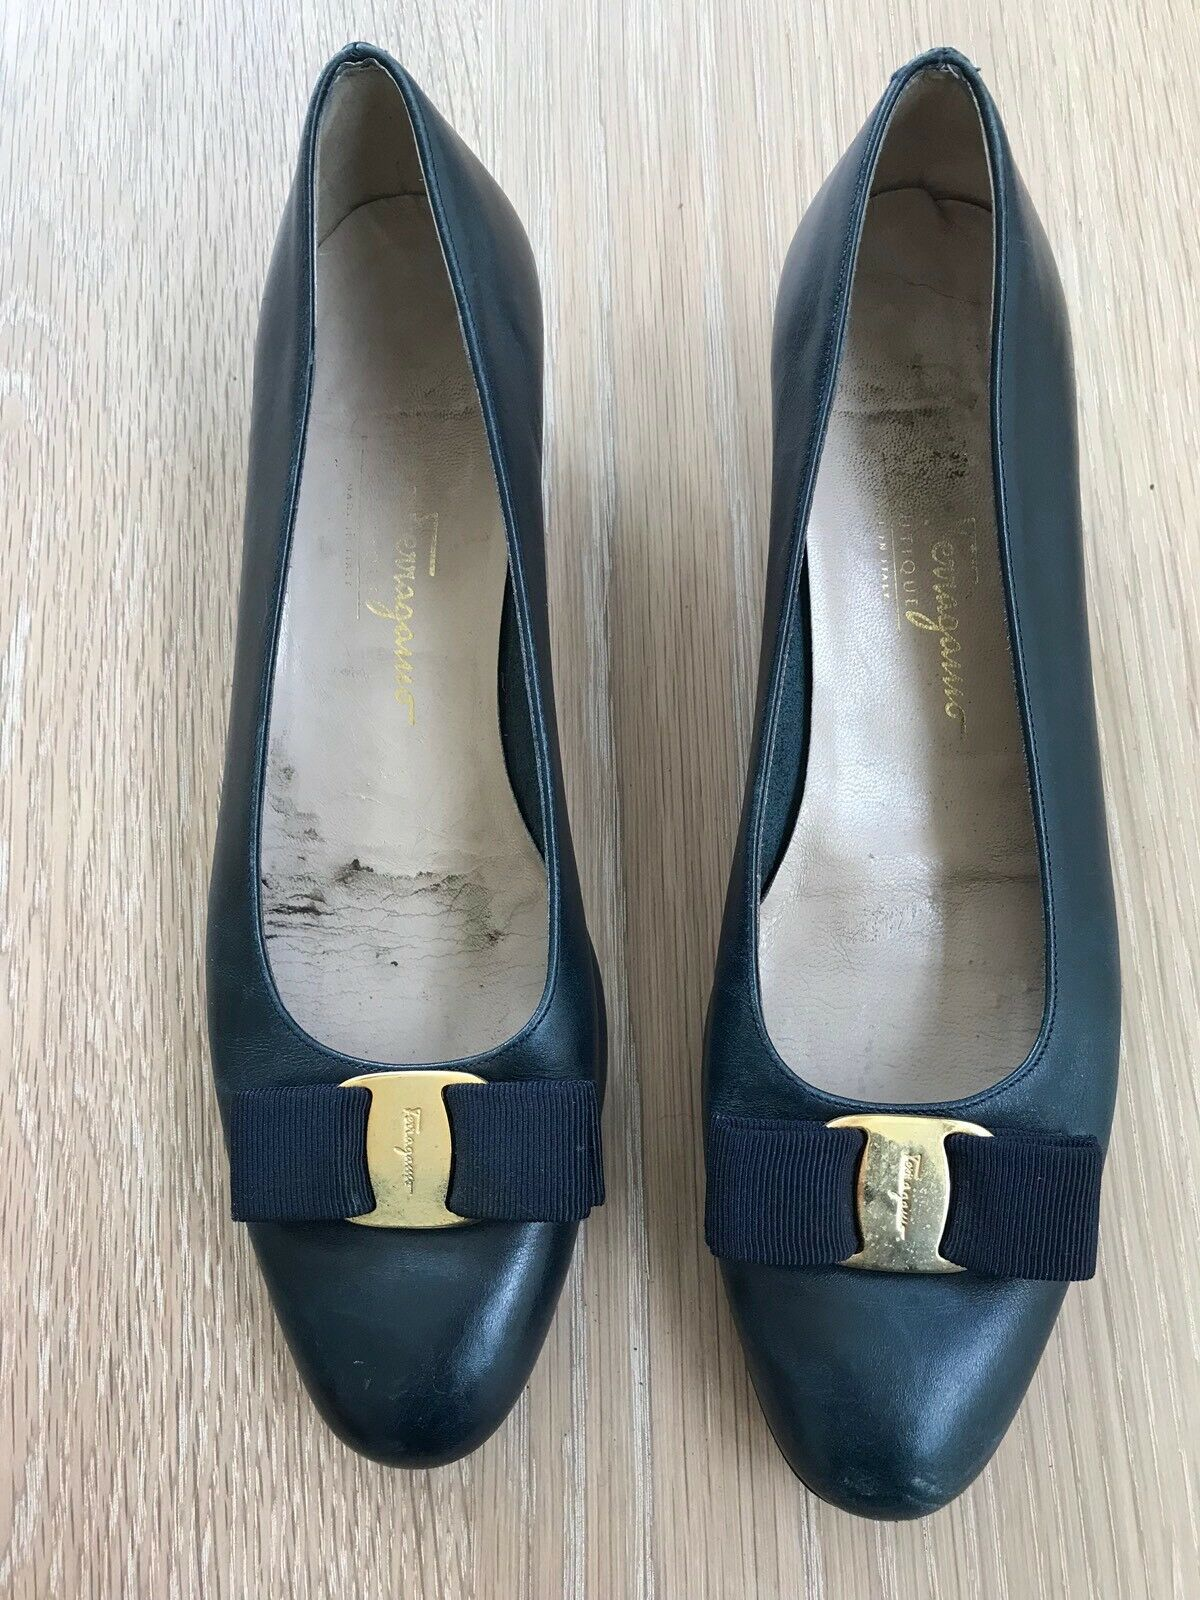 Vintage SALVATORE FERRAGAMO VARINA VARA VARA VARA blueE LEATHER  SHOES 9AAA  Or 8.5 9d058c